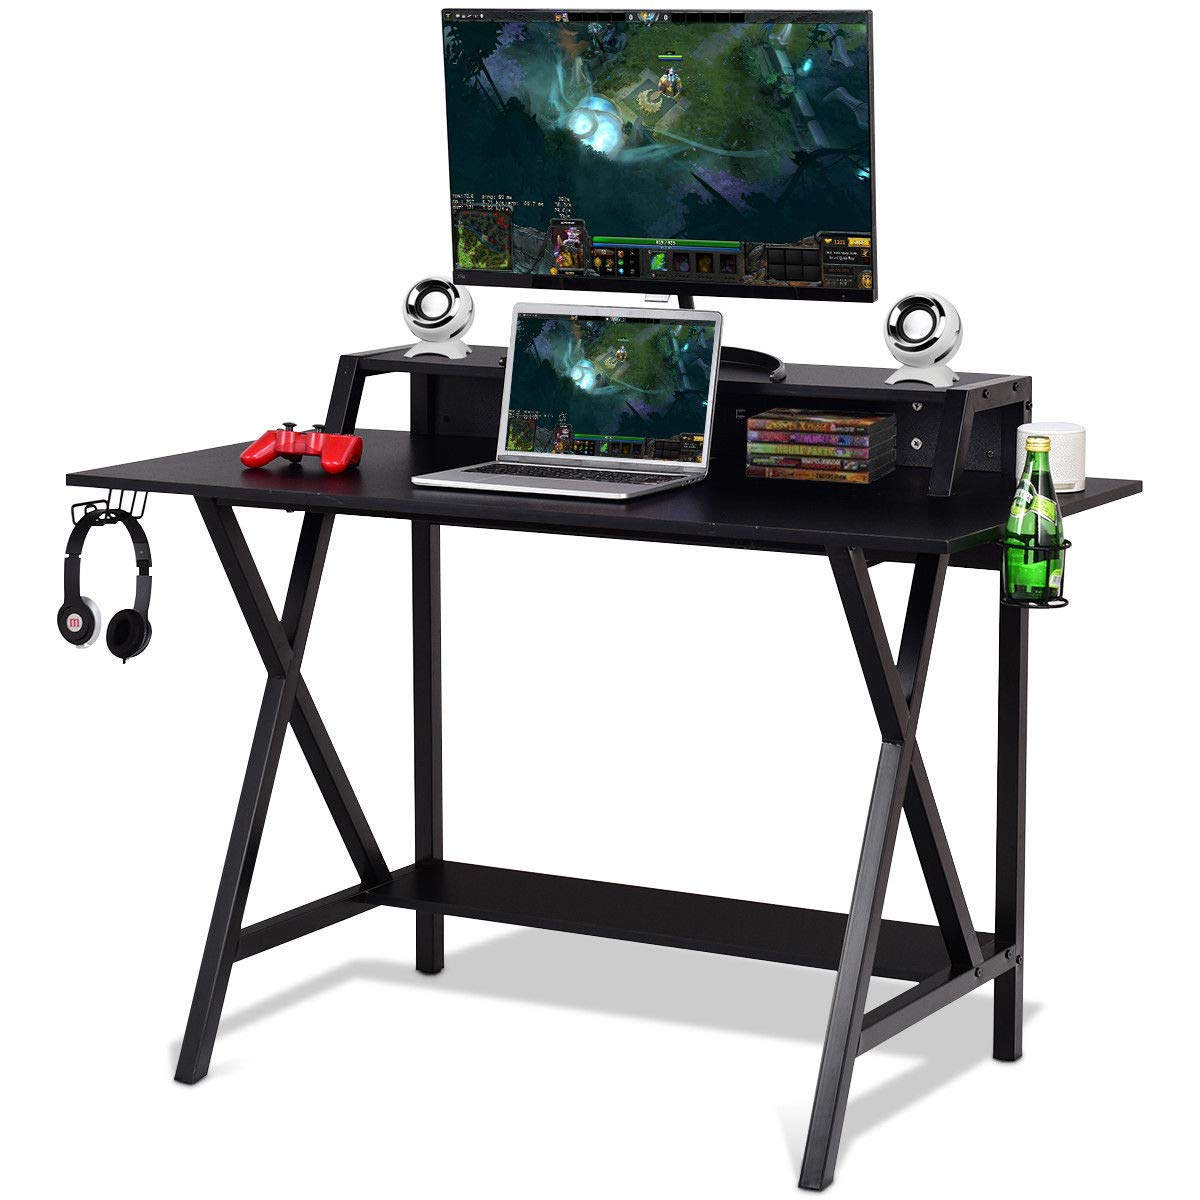 Tangkula Gaming Desk, Gaming Computer Desk, Gamers Computer Desk, Gaming Workstation with Cup & Headphone Holder, Built-in Wire-Management, Writing Desk for Home Or Office, Black